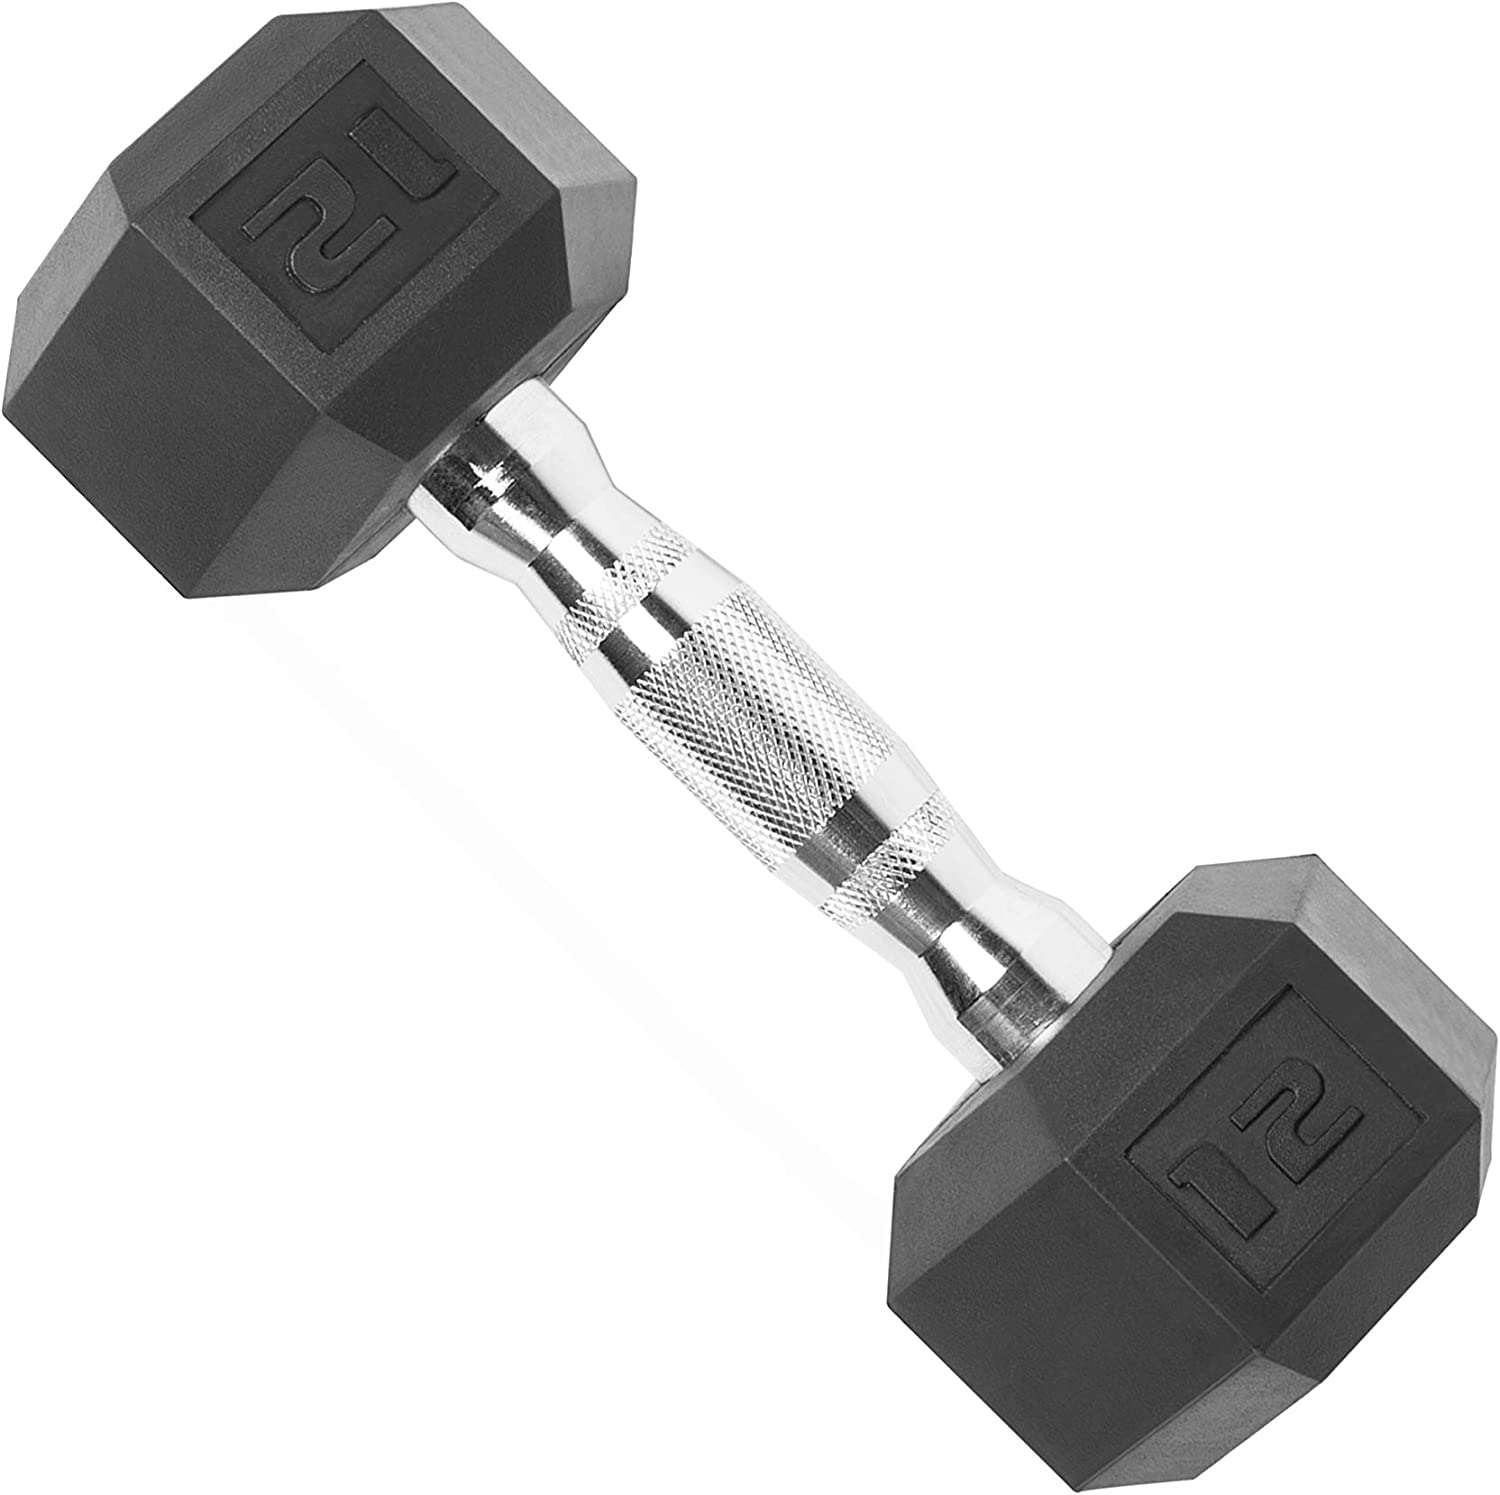 10LB x 2 ISABUFEI Dumbells Weights Dumbbells Set Heavy Choose Weight Barbell Set Hex Rubber Dumbbell with Metal Handles Heavy Dumbbell Set for Muscle Training